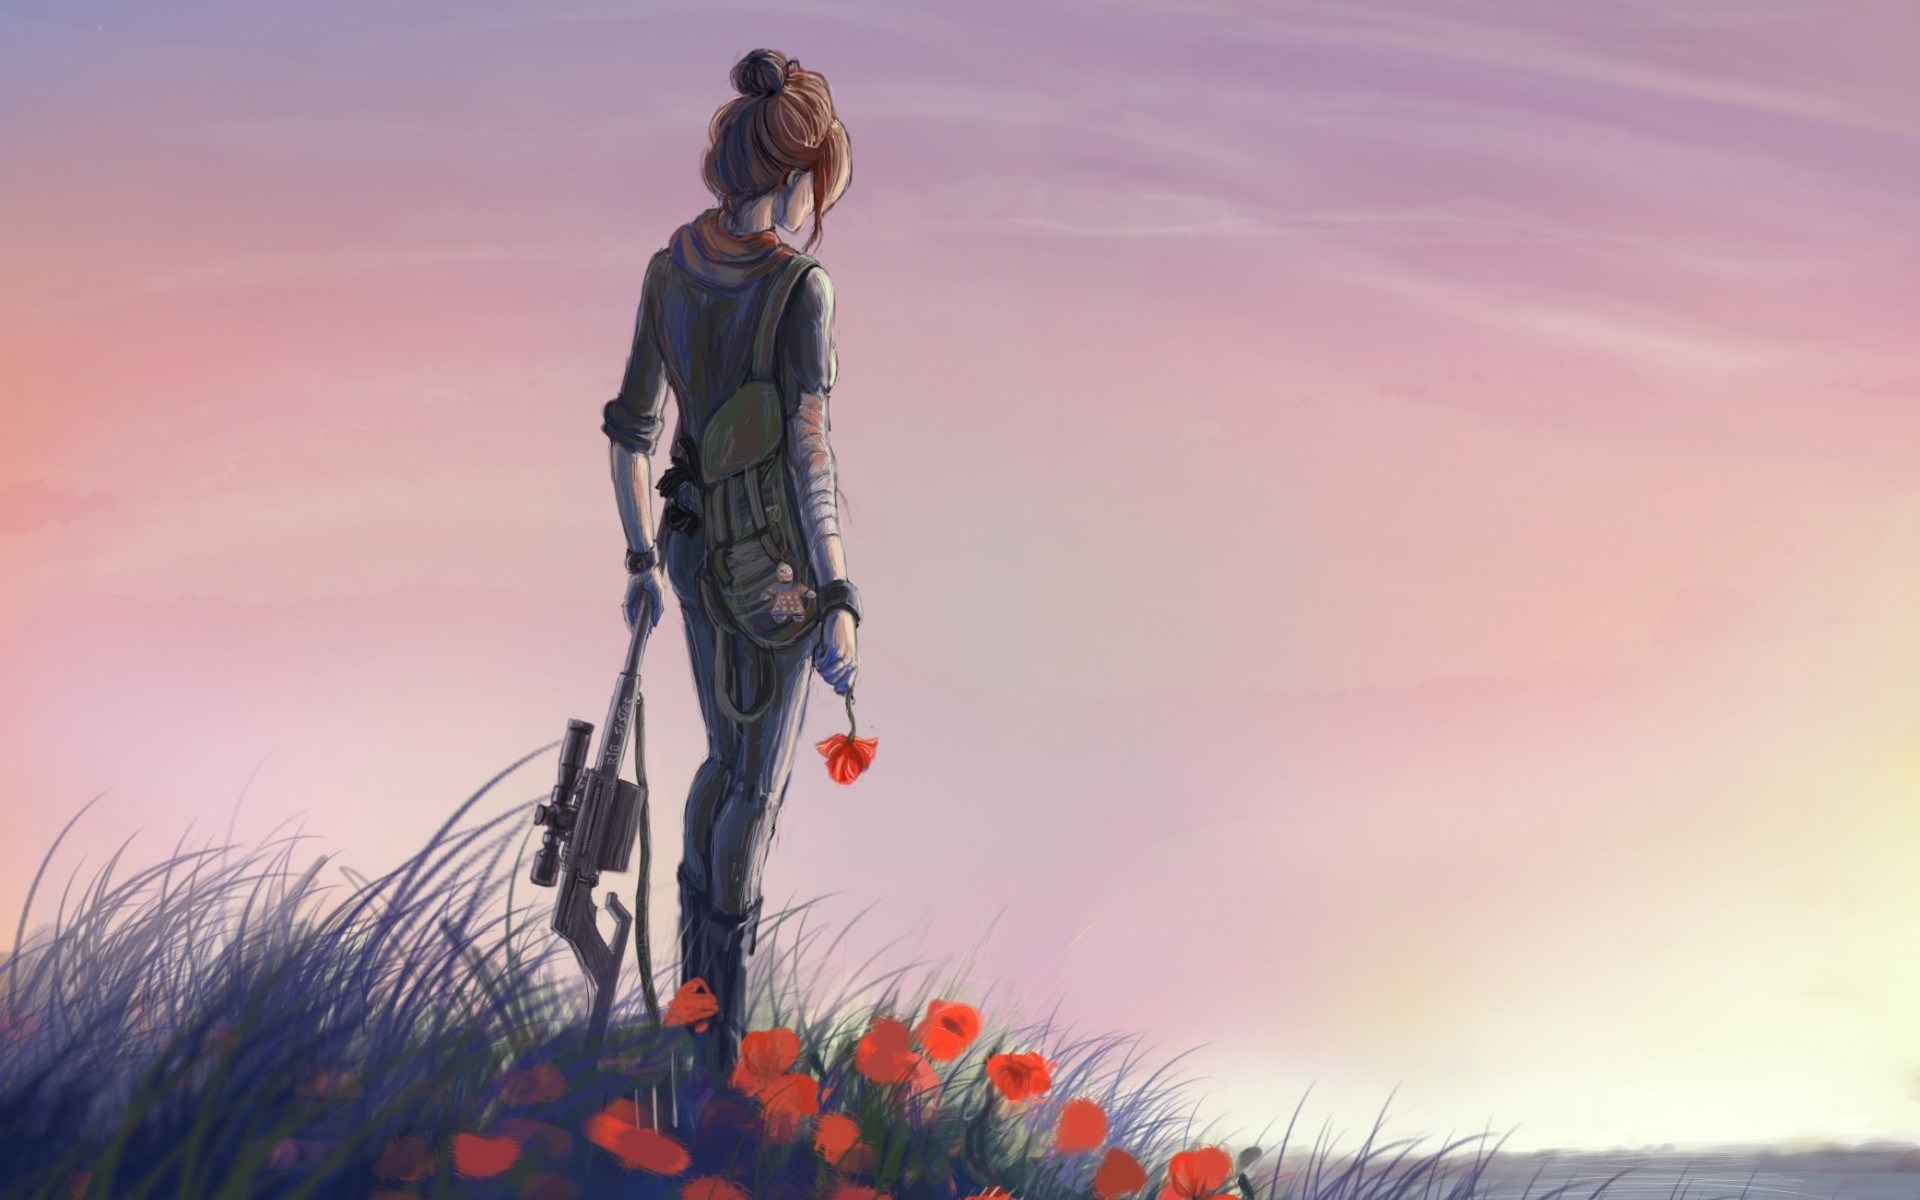 Art Girl Weapon Flowers Red Poppies Meadow